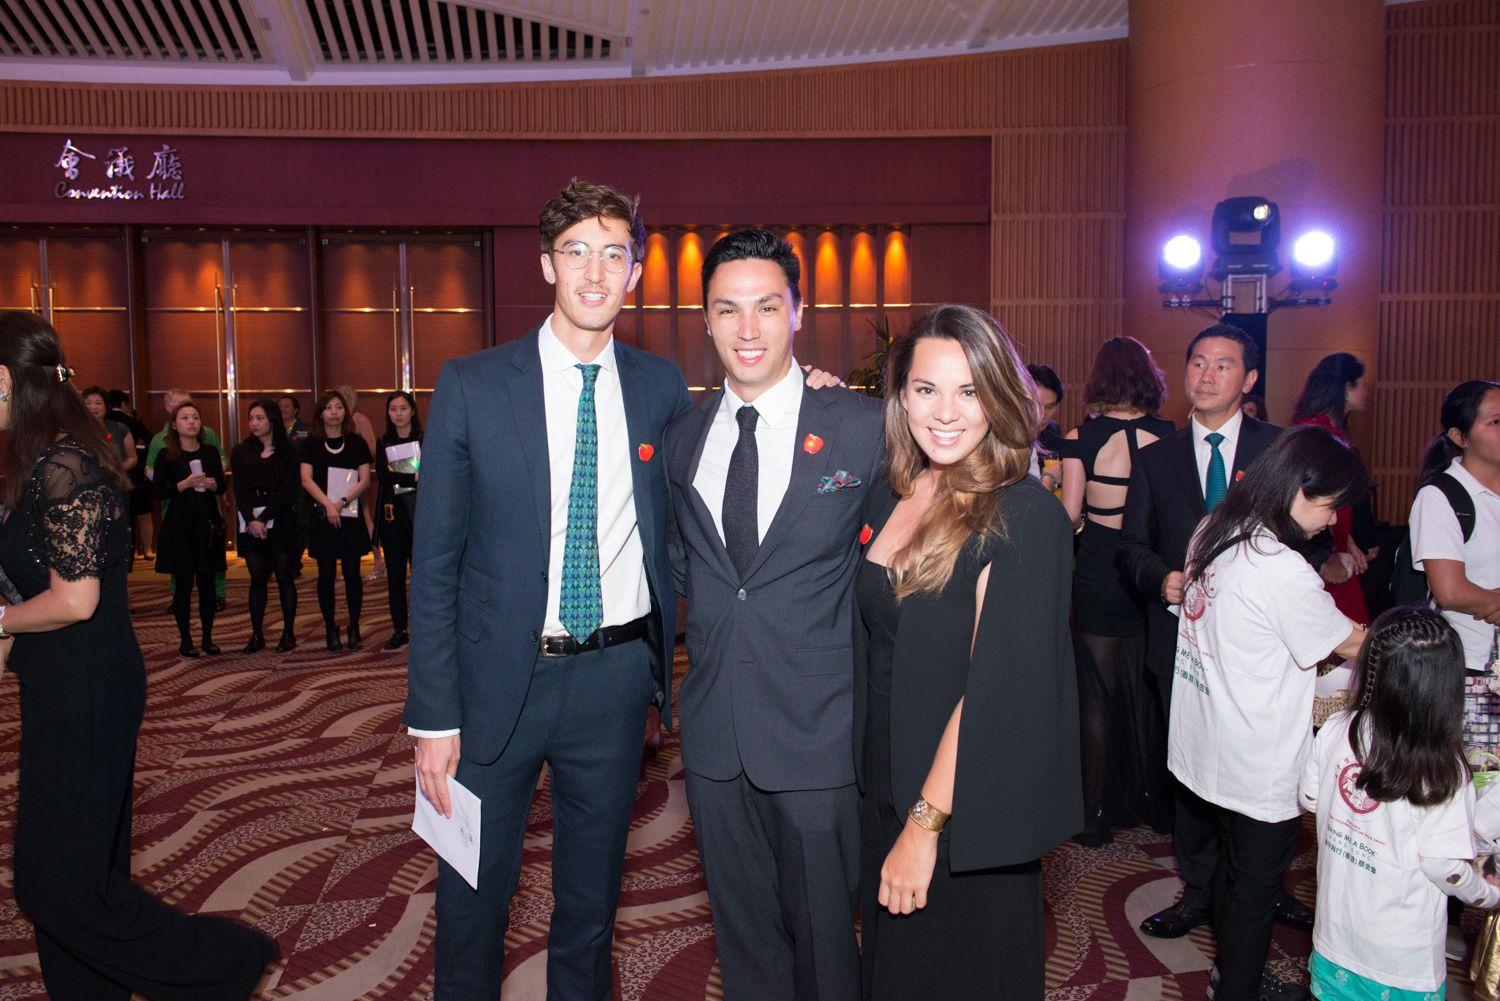 Nick Buckley-Wood, Adam Raby and Jessica Cheung